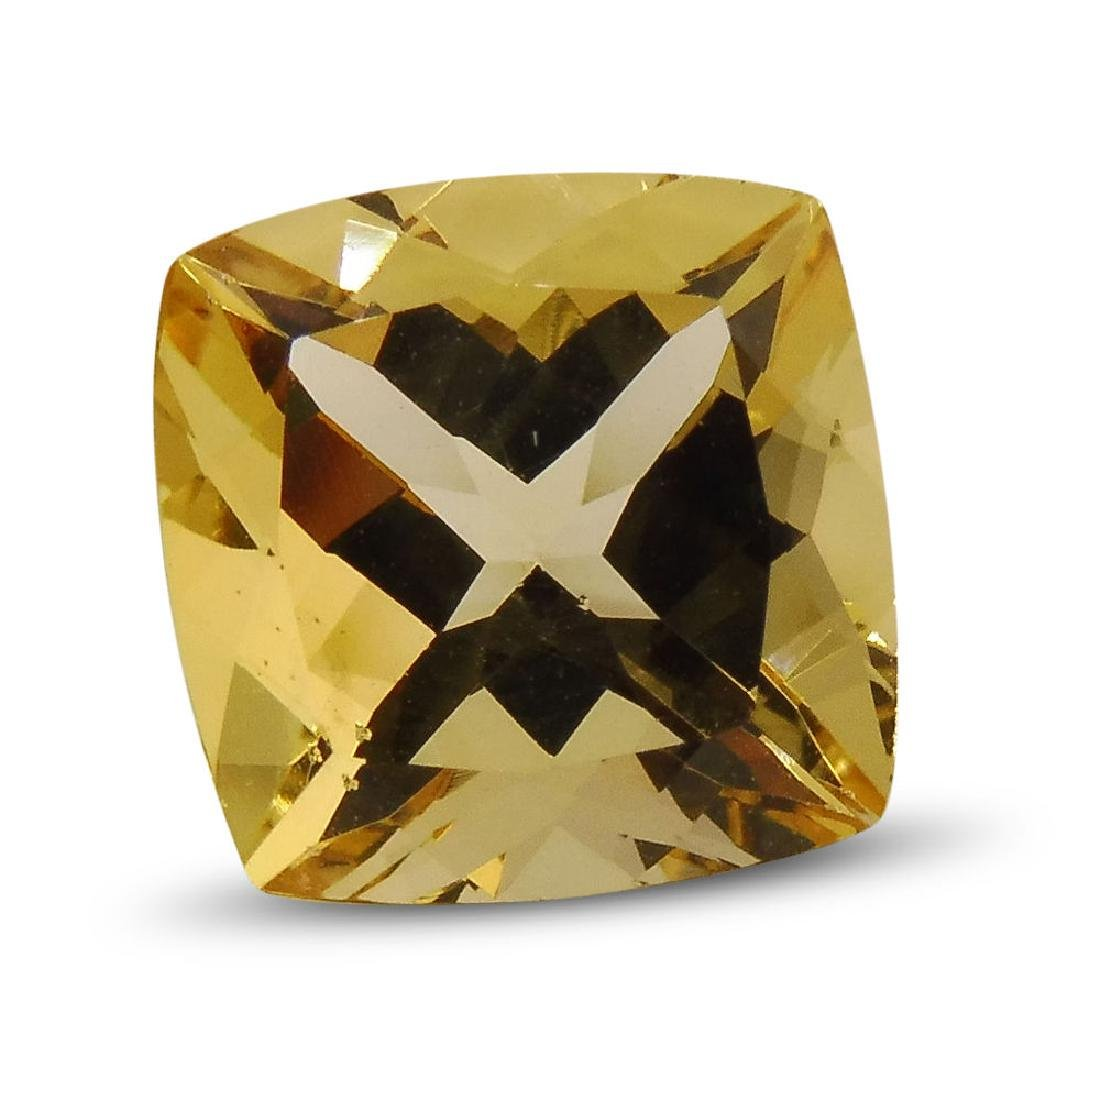 2.7 Carat Loose Square Cushion Heliodor